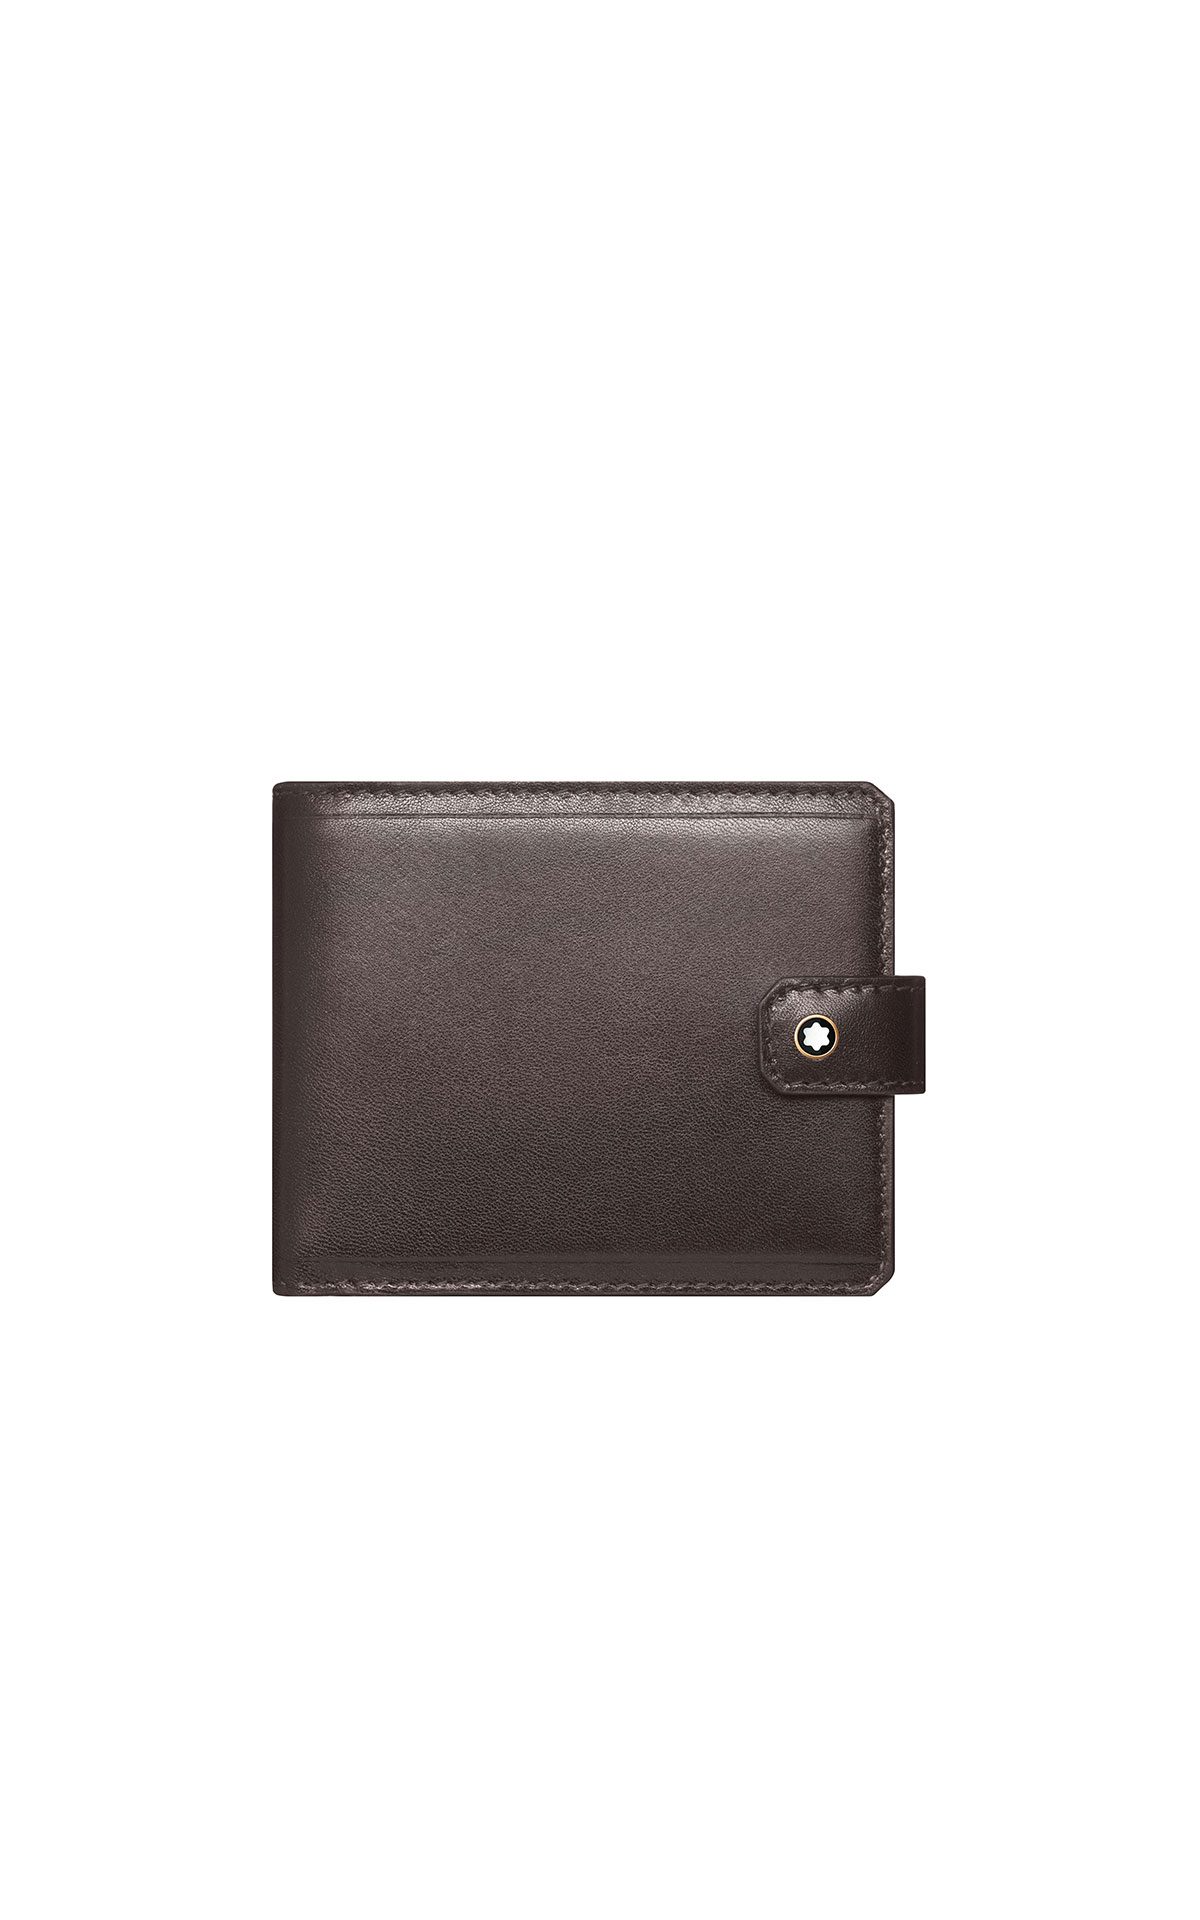 Montblanc Wallet 6cc, Dark Brown from Bicester Village